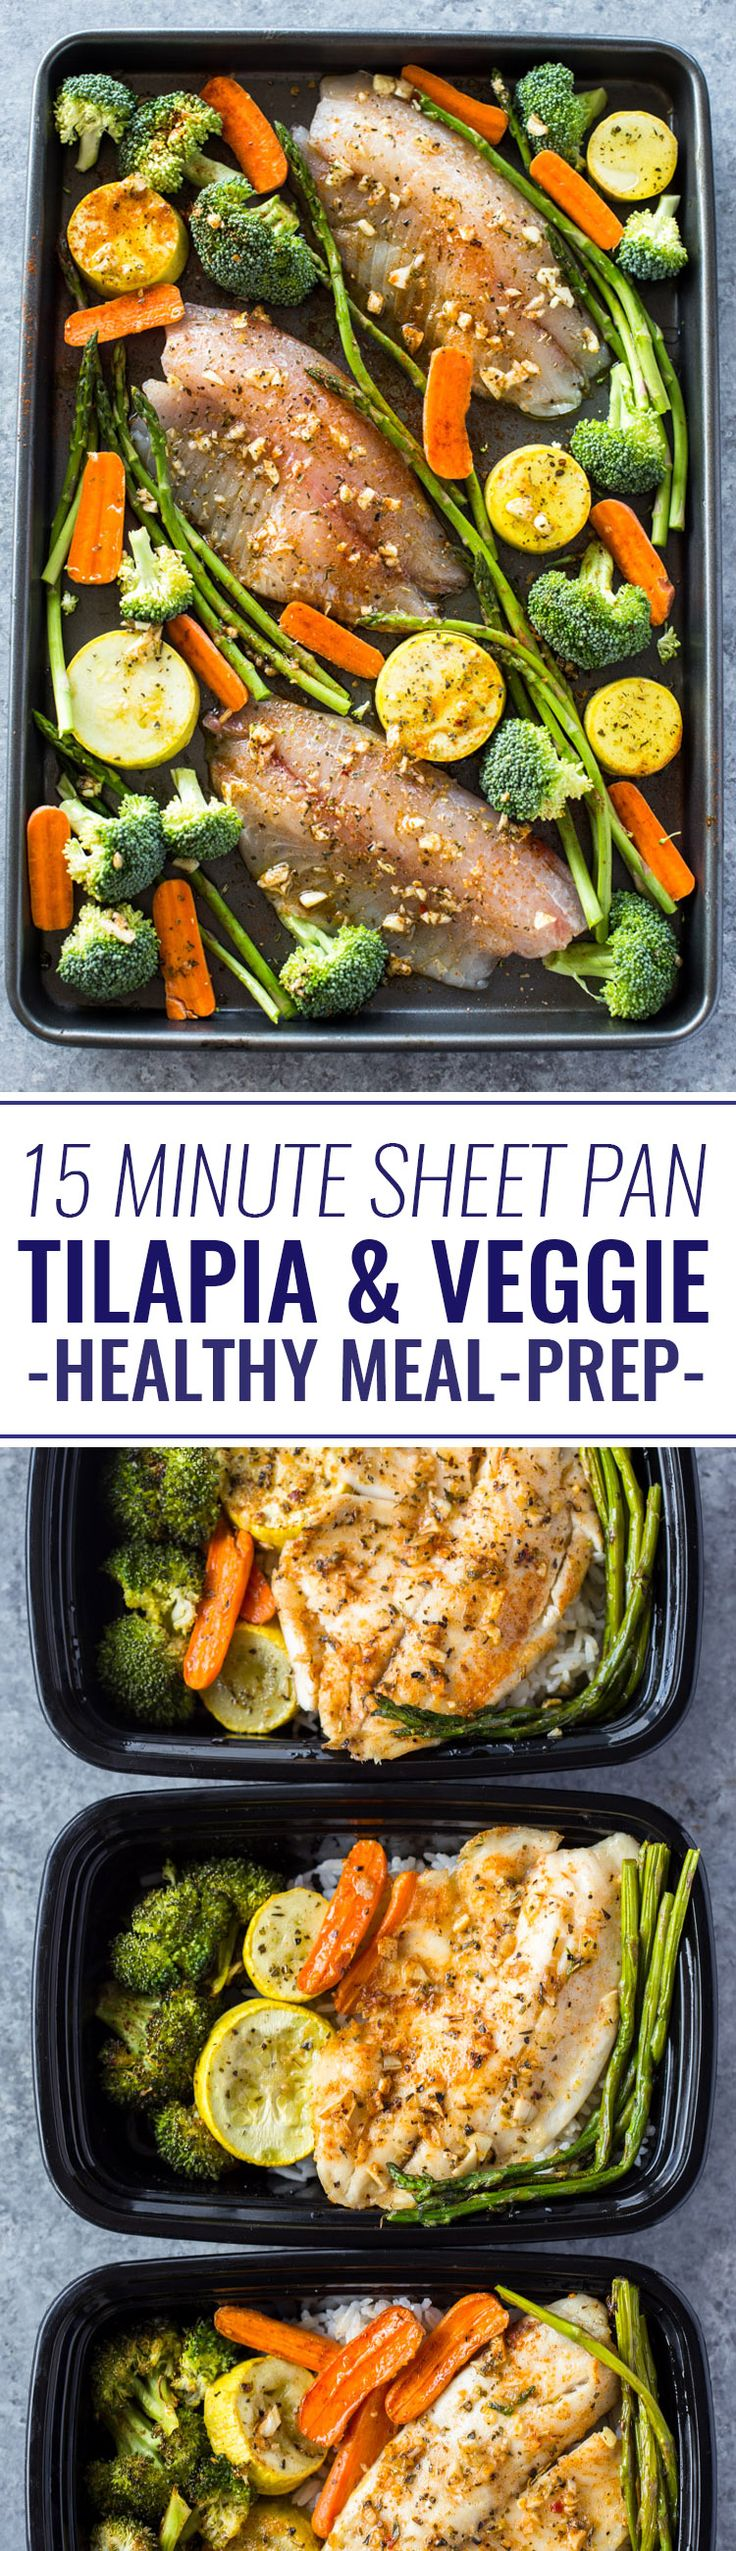 Healthy Sheet Pan Tilapia and Veggies + Meal-Prep (We don't eat tilapia, so I'd substitute another mild tasting fish).